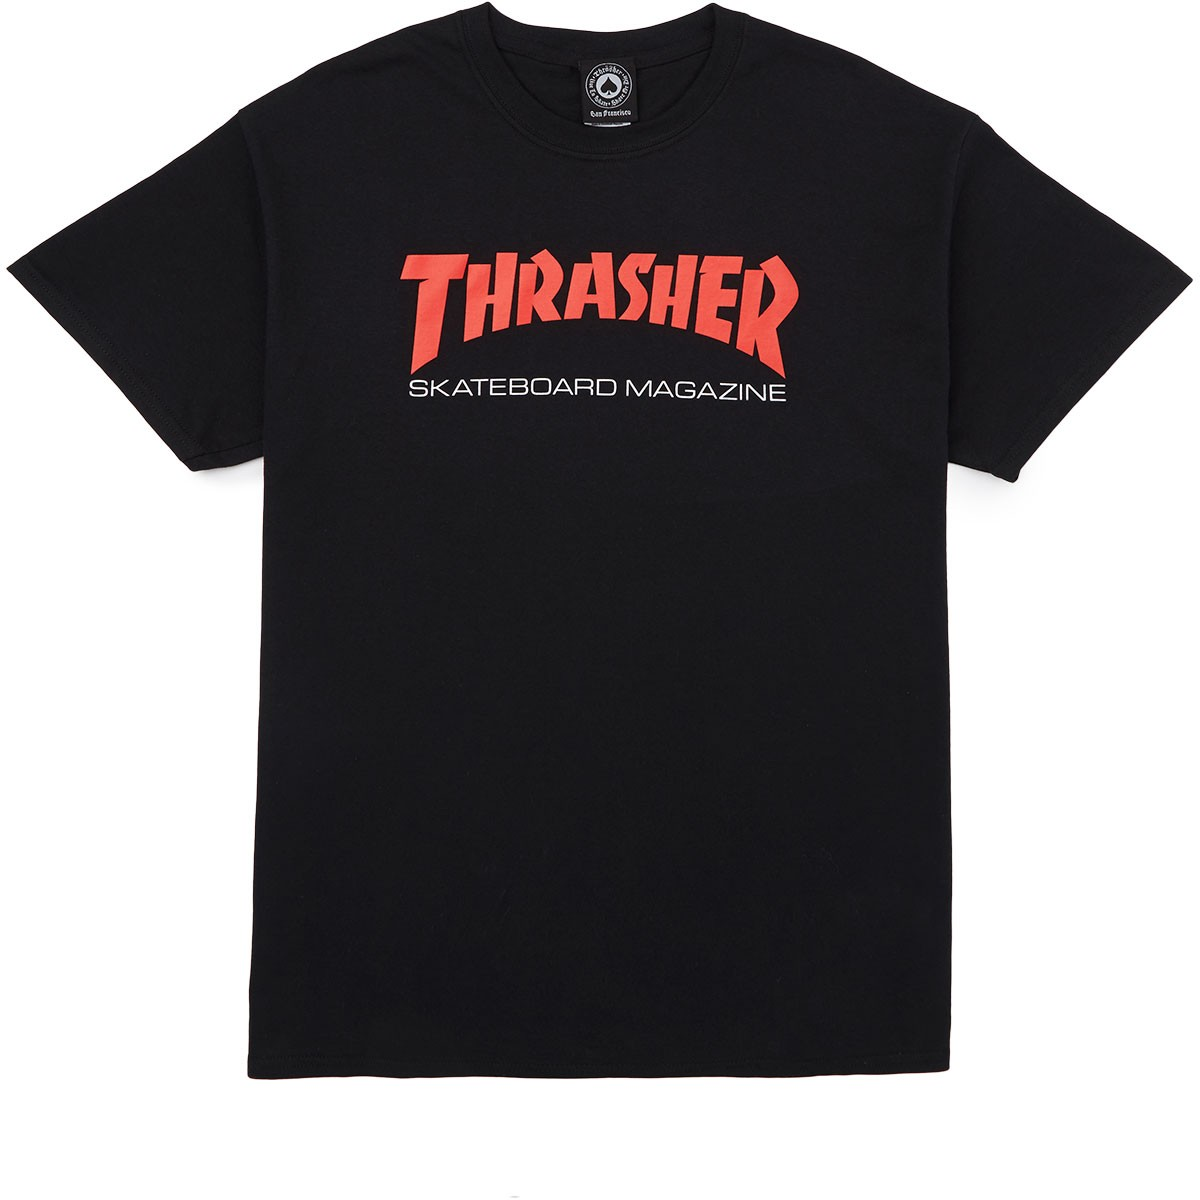 b7d3cde66 Thrasher Two-Tone Skate Mag T-Shirt - Black